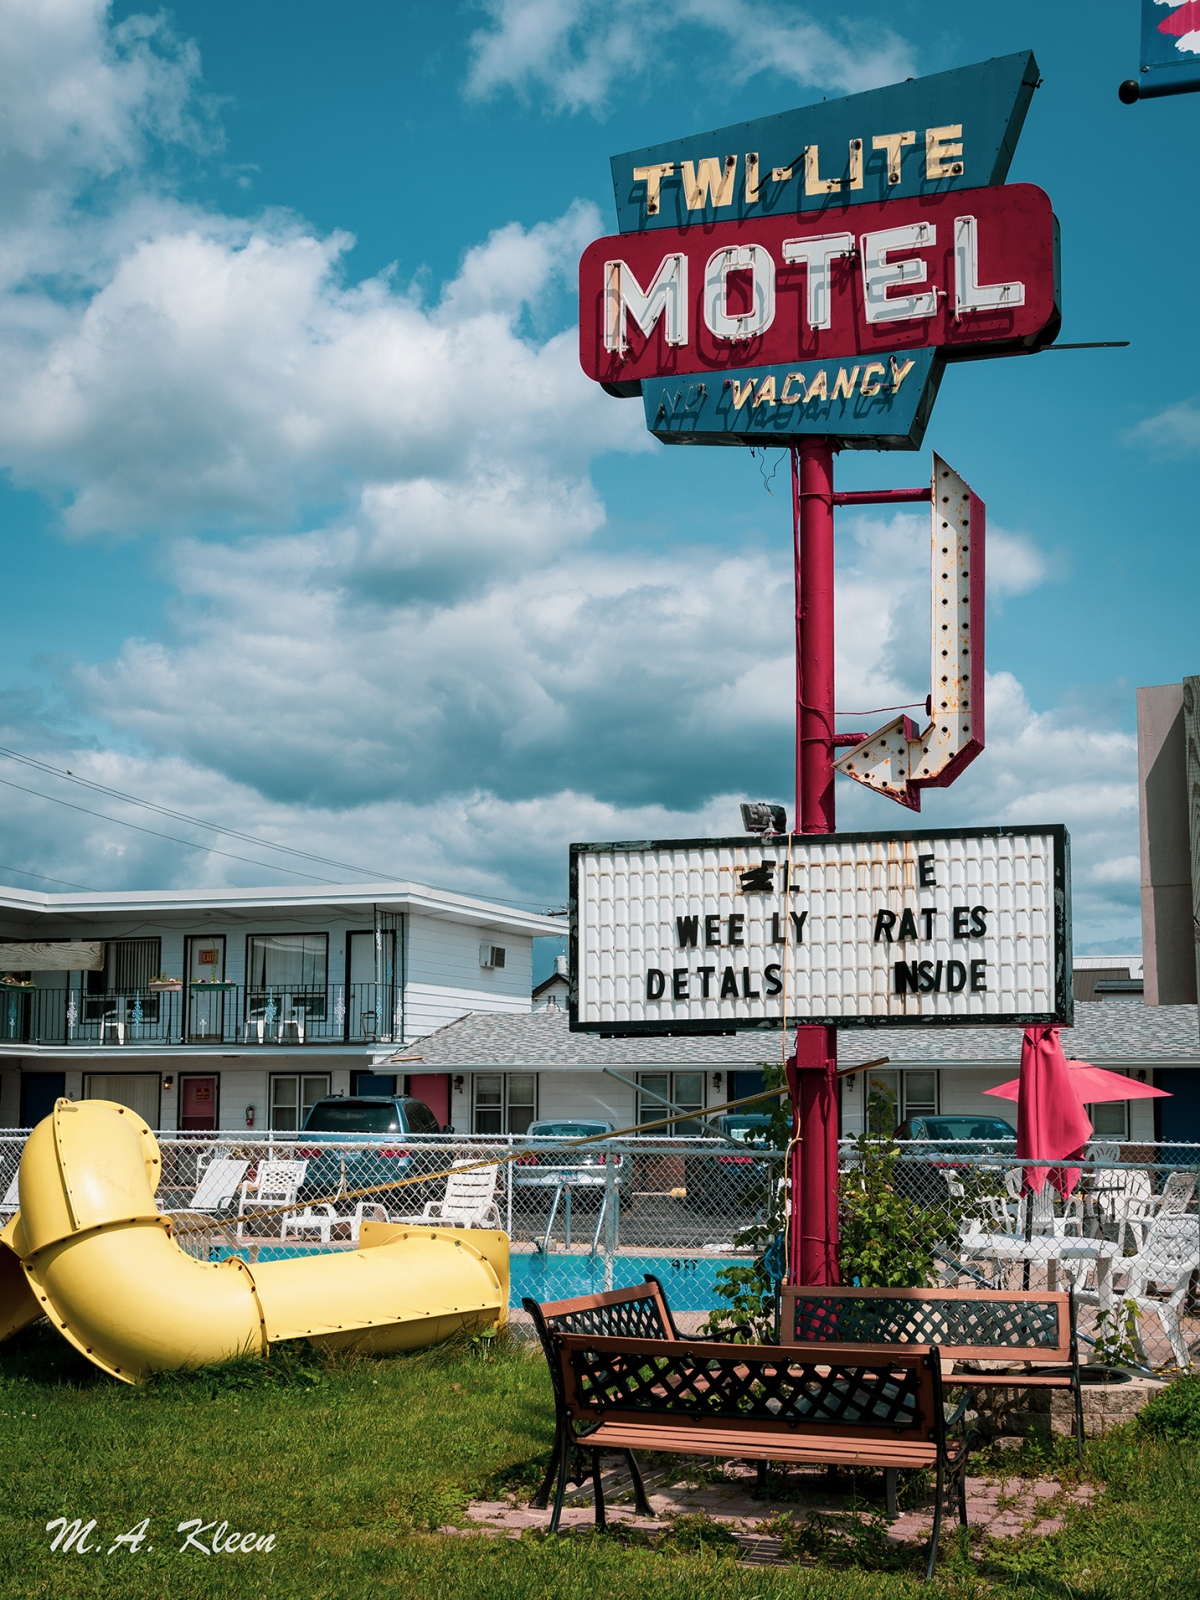 Glorious vintage neon sign for the Twi-Lite Motel, 111 Wisconsin Dells Pkwy S. (U.S. Route 12), Wisconsin Dells, Wisconsin.